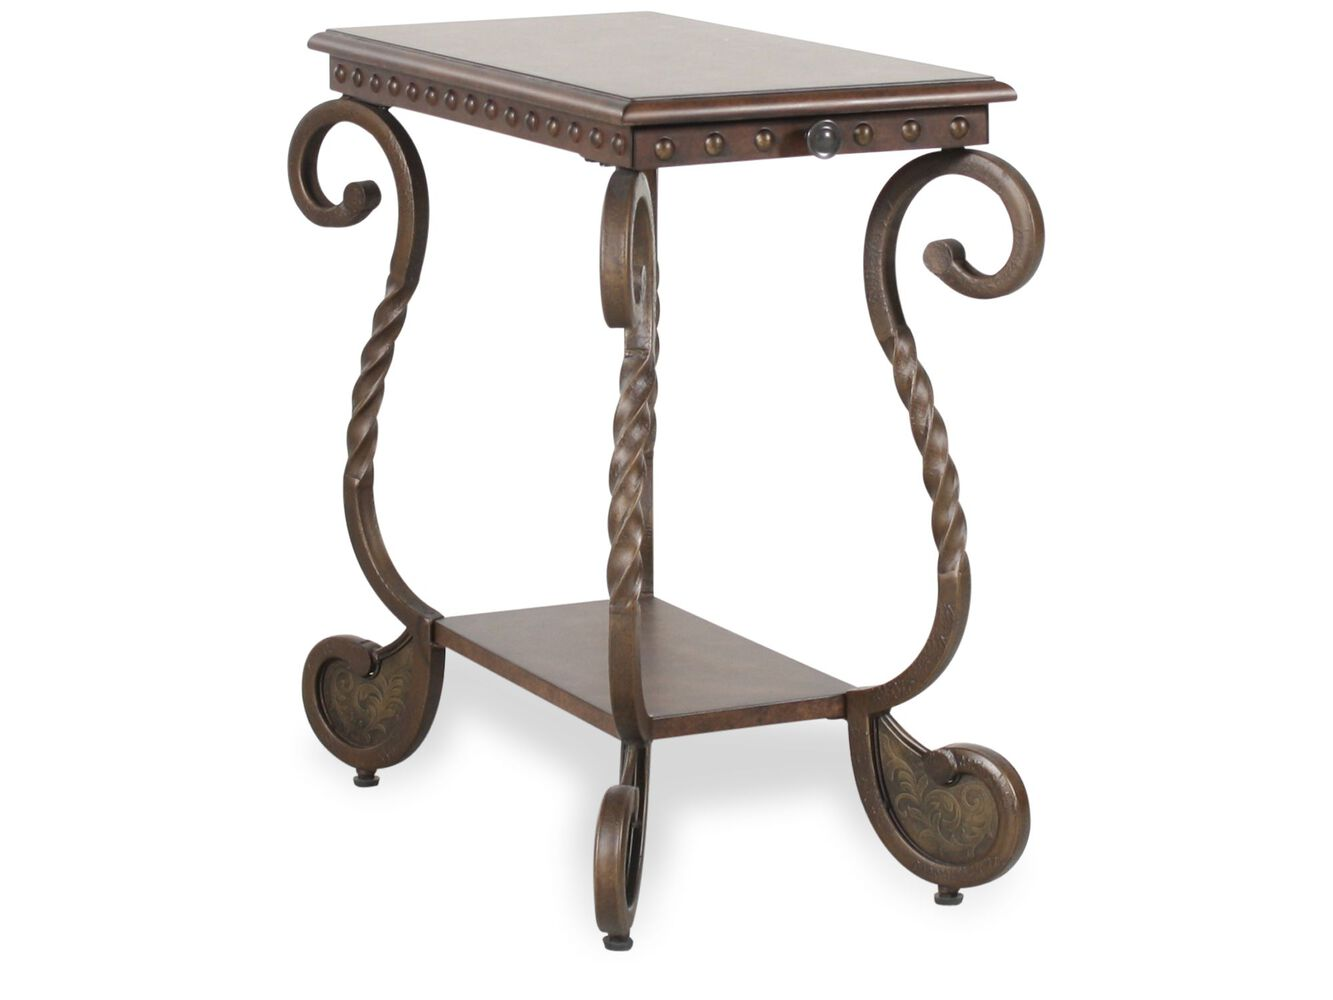 Ashley rafferty chairside end table mathis brothers furniture ashley rafferty chairside end table geotapseo Images